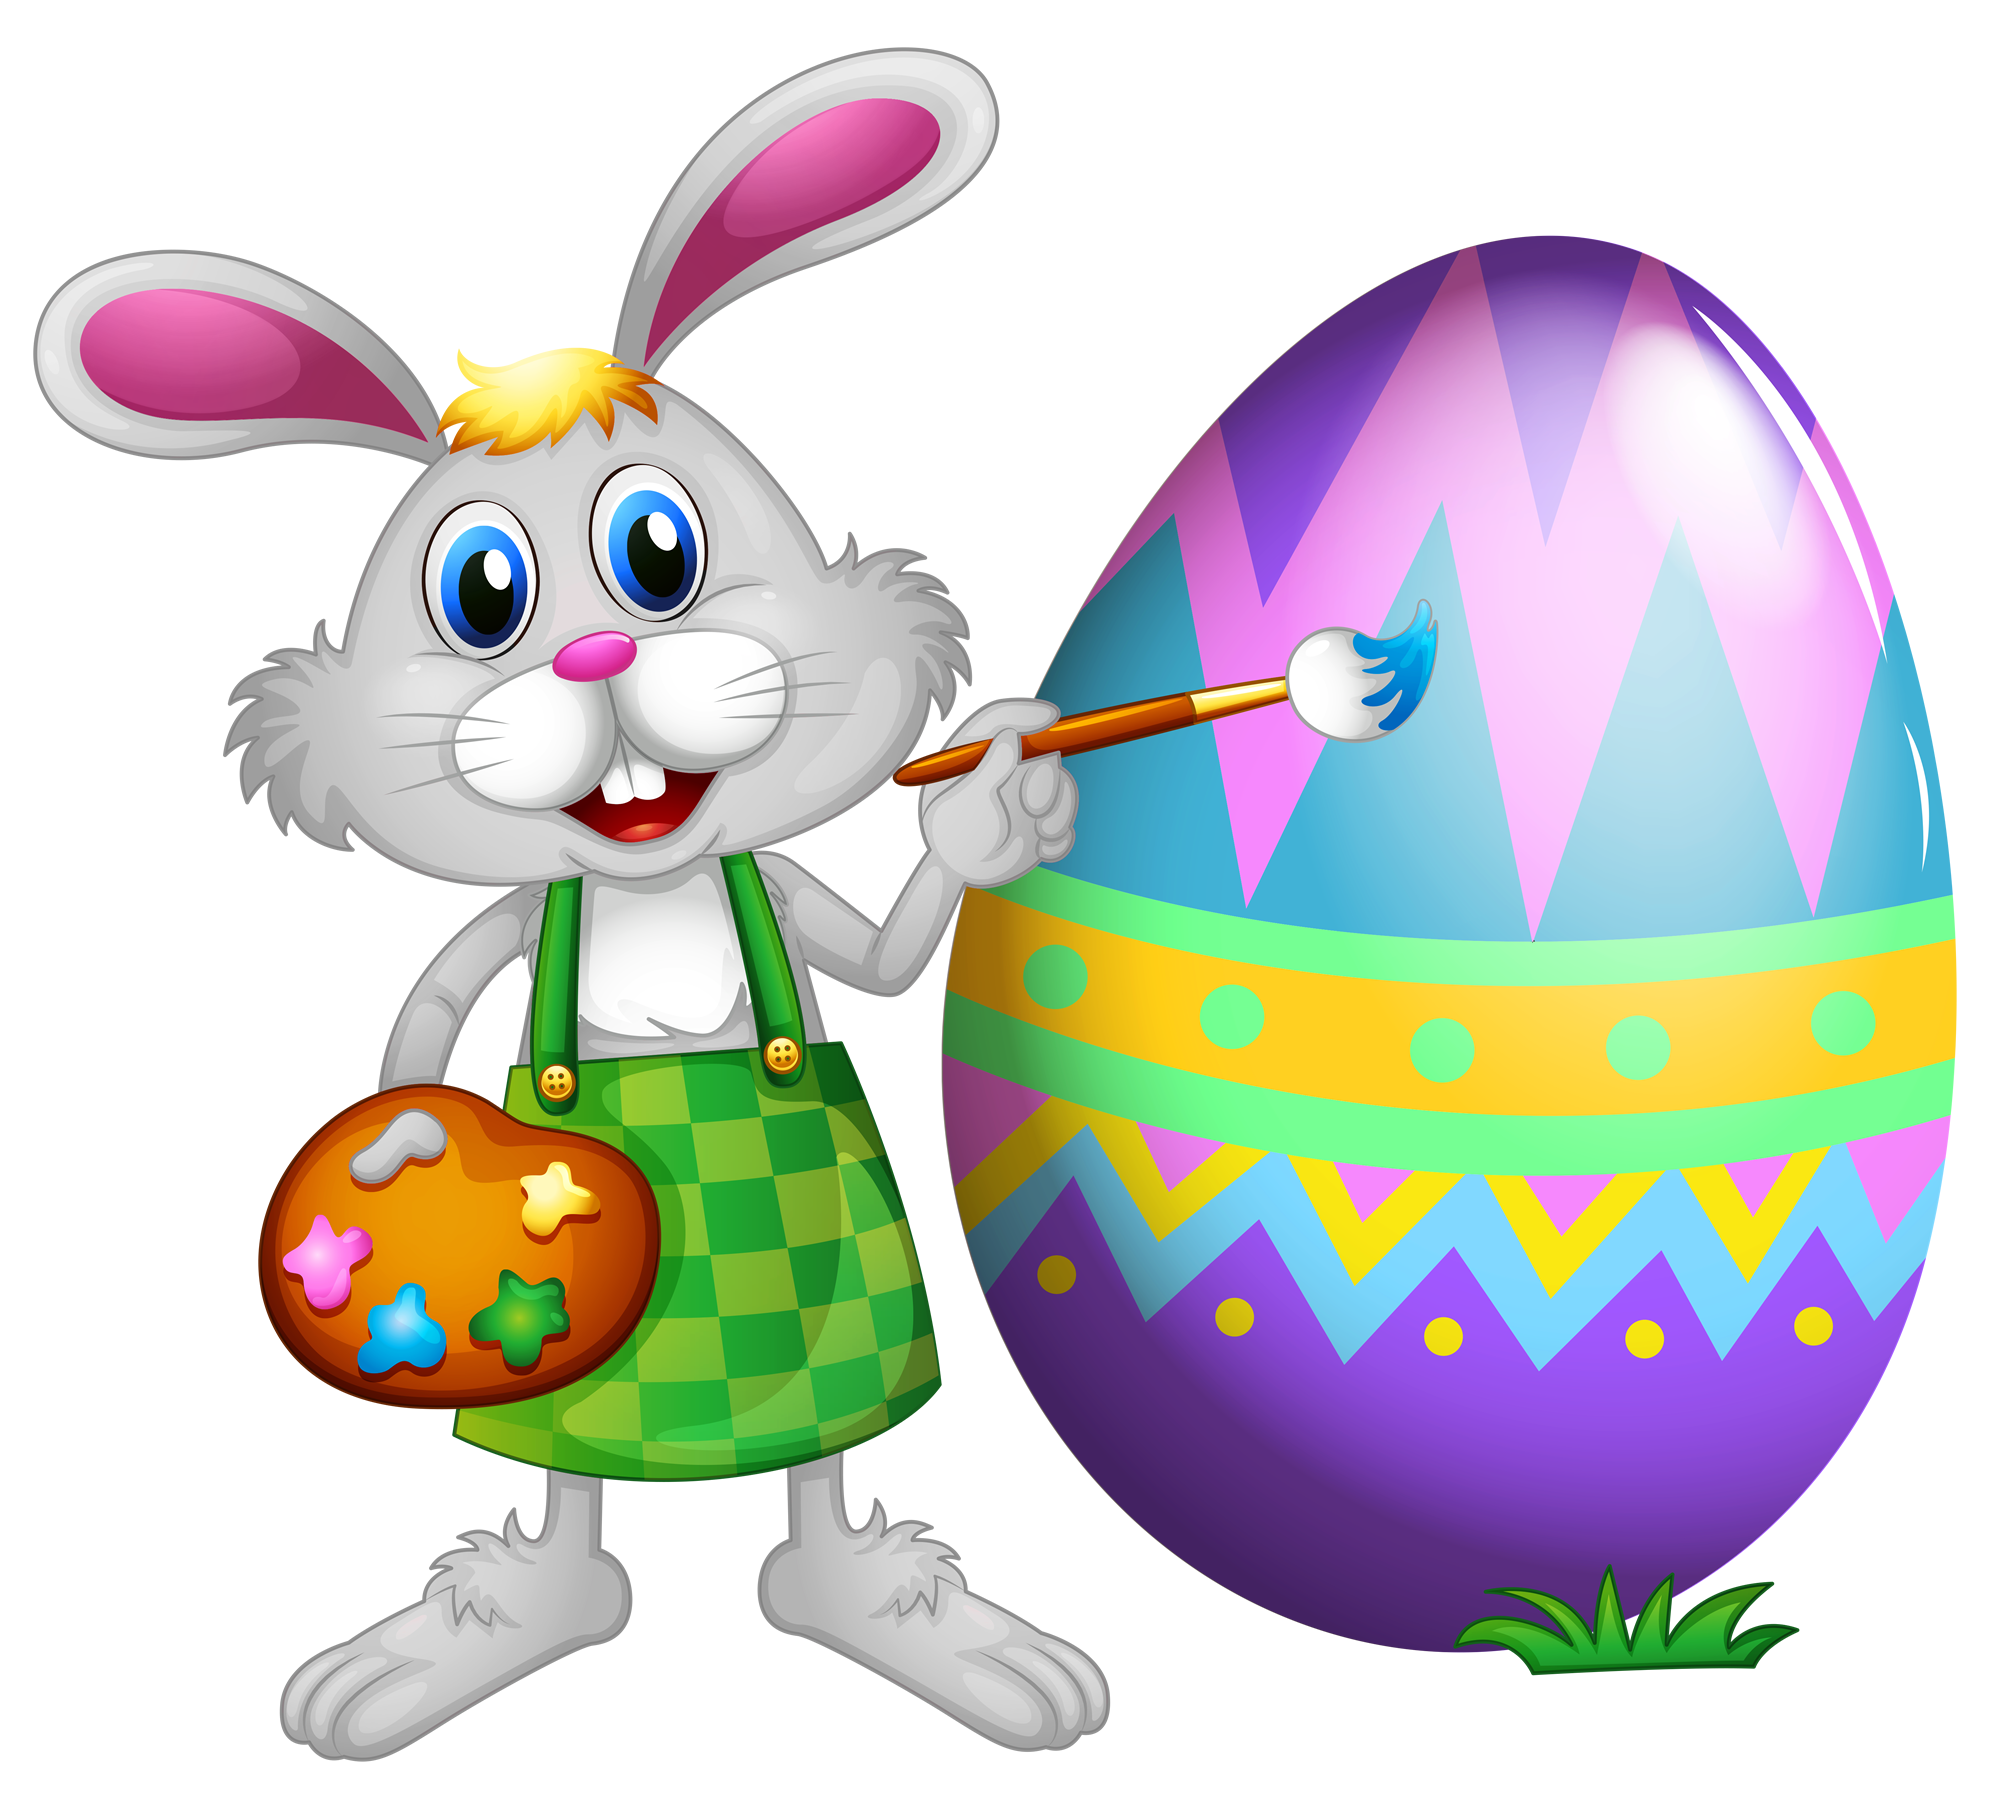 Starwars clipart easter. Clip art bunny swimming